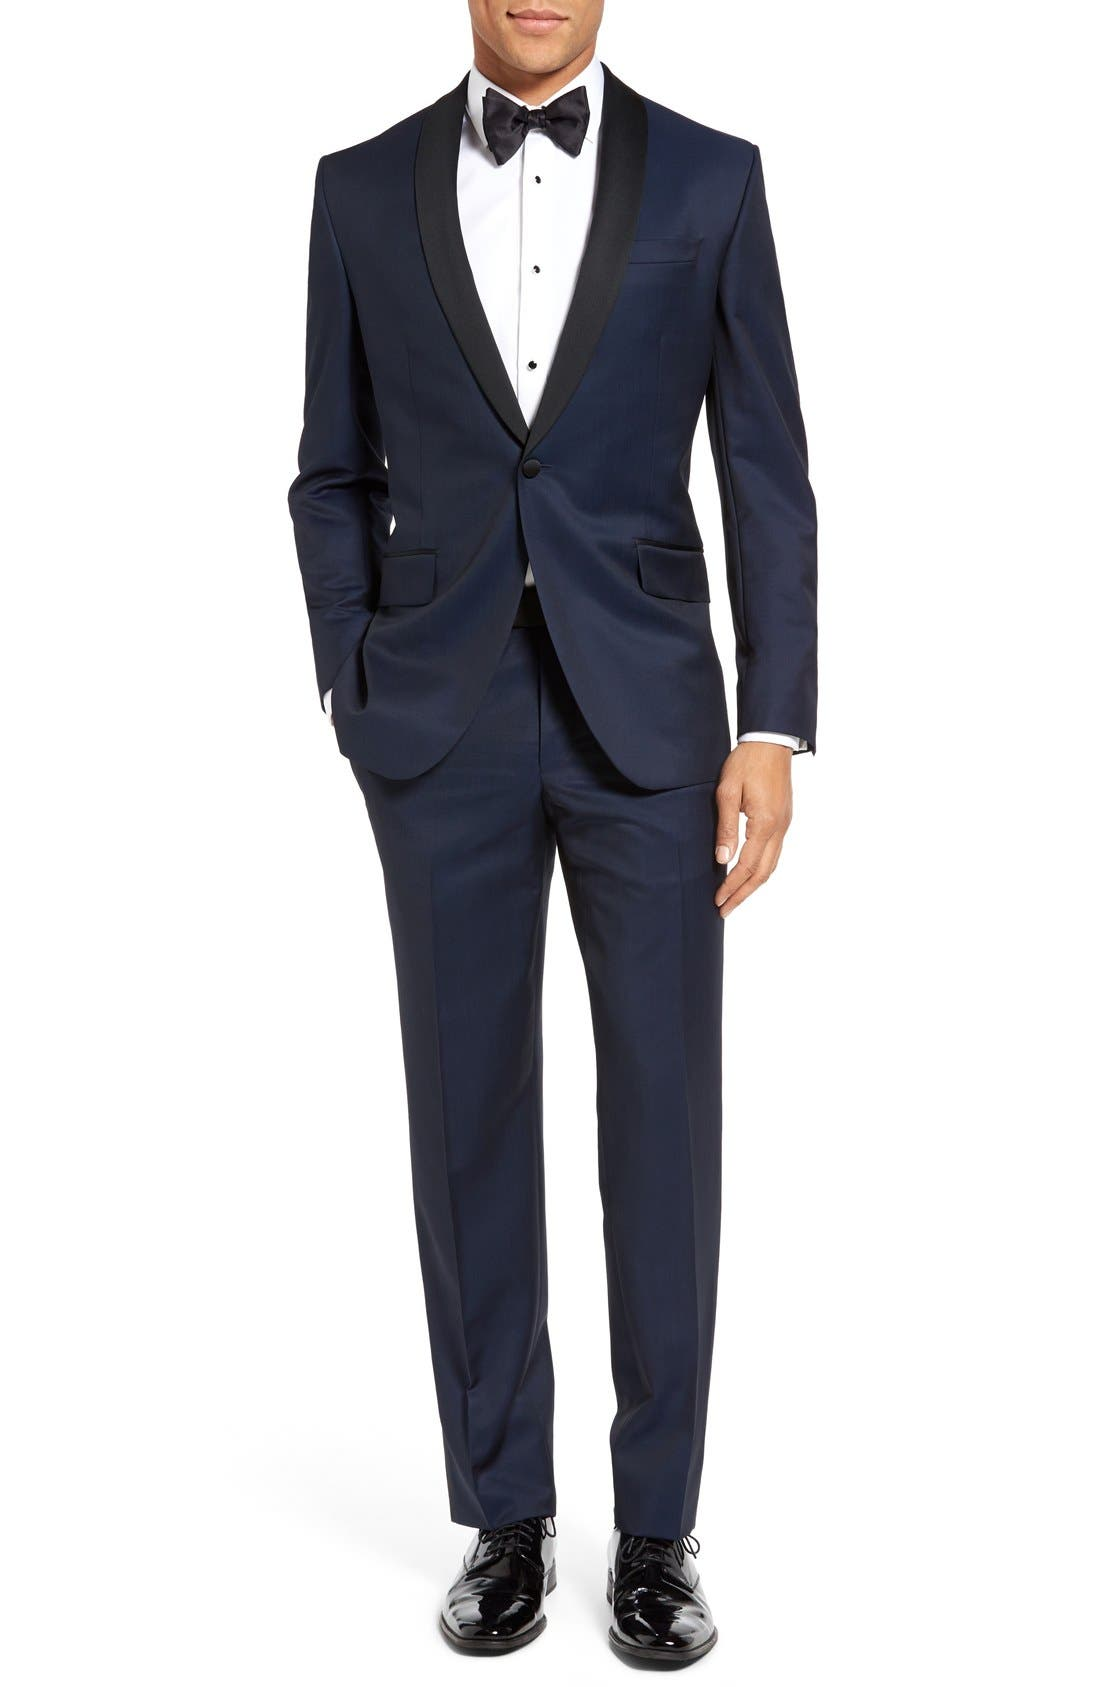 'Josh' Trim Fit Navy Shawl Lapel Tuxedo,                             Main thumbnail 1, color,                             Navy Blue